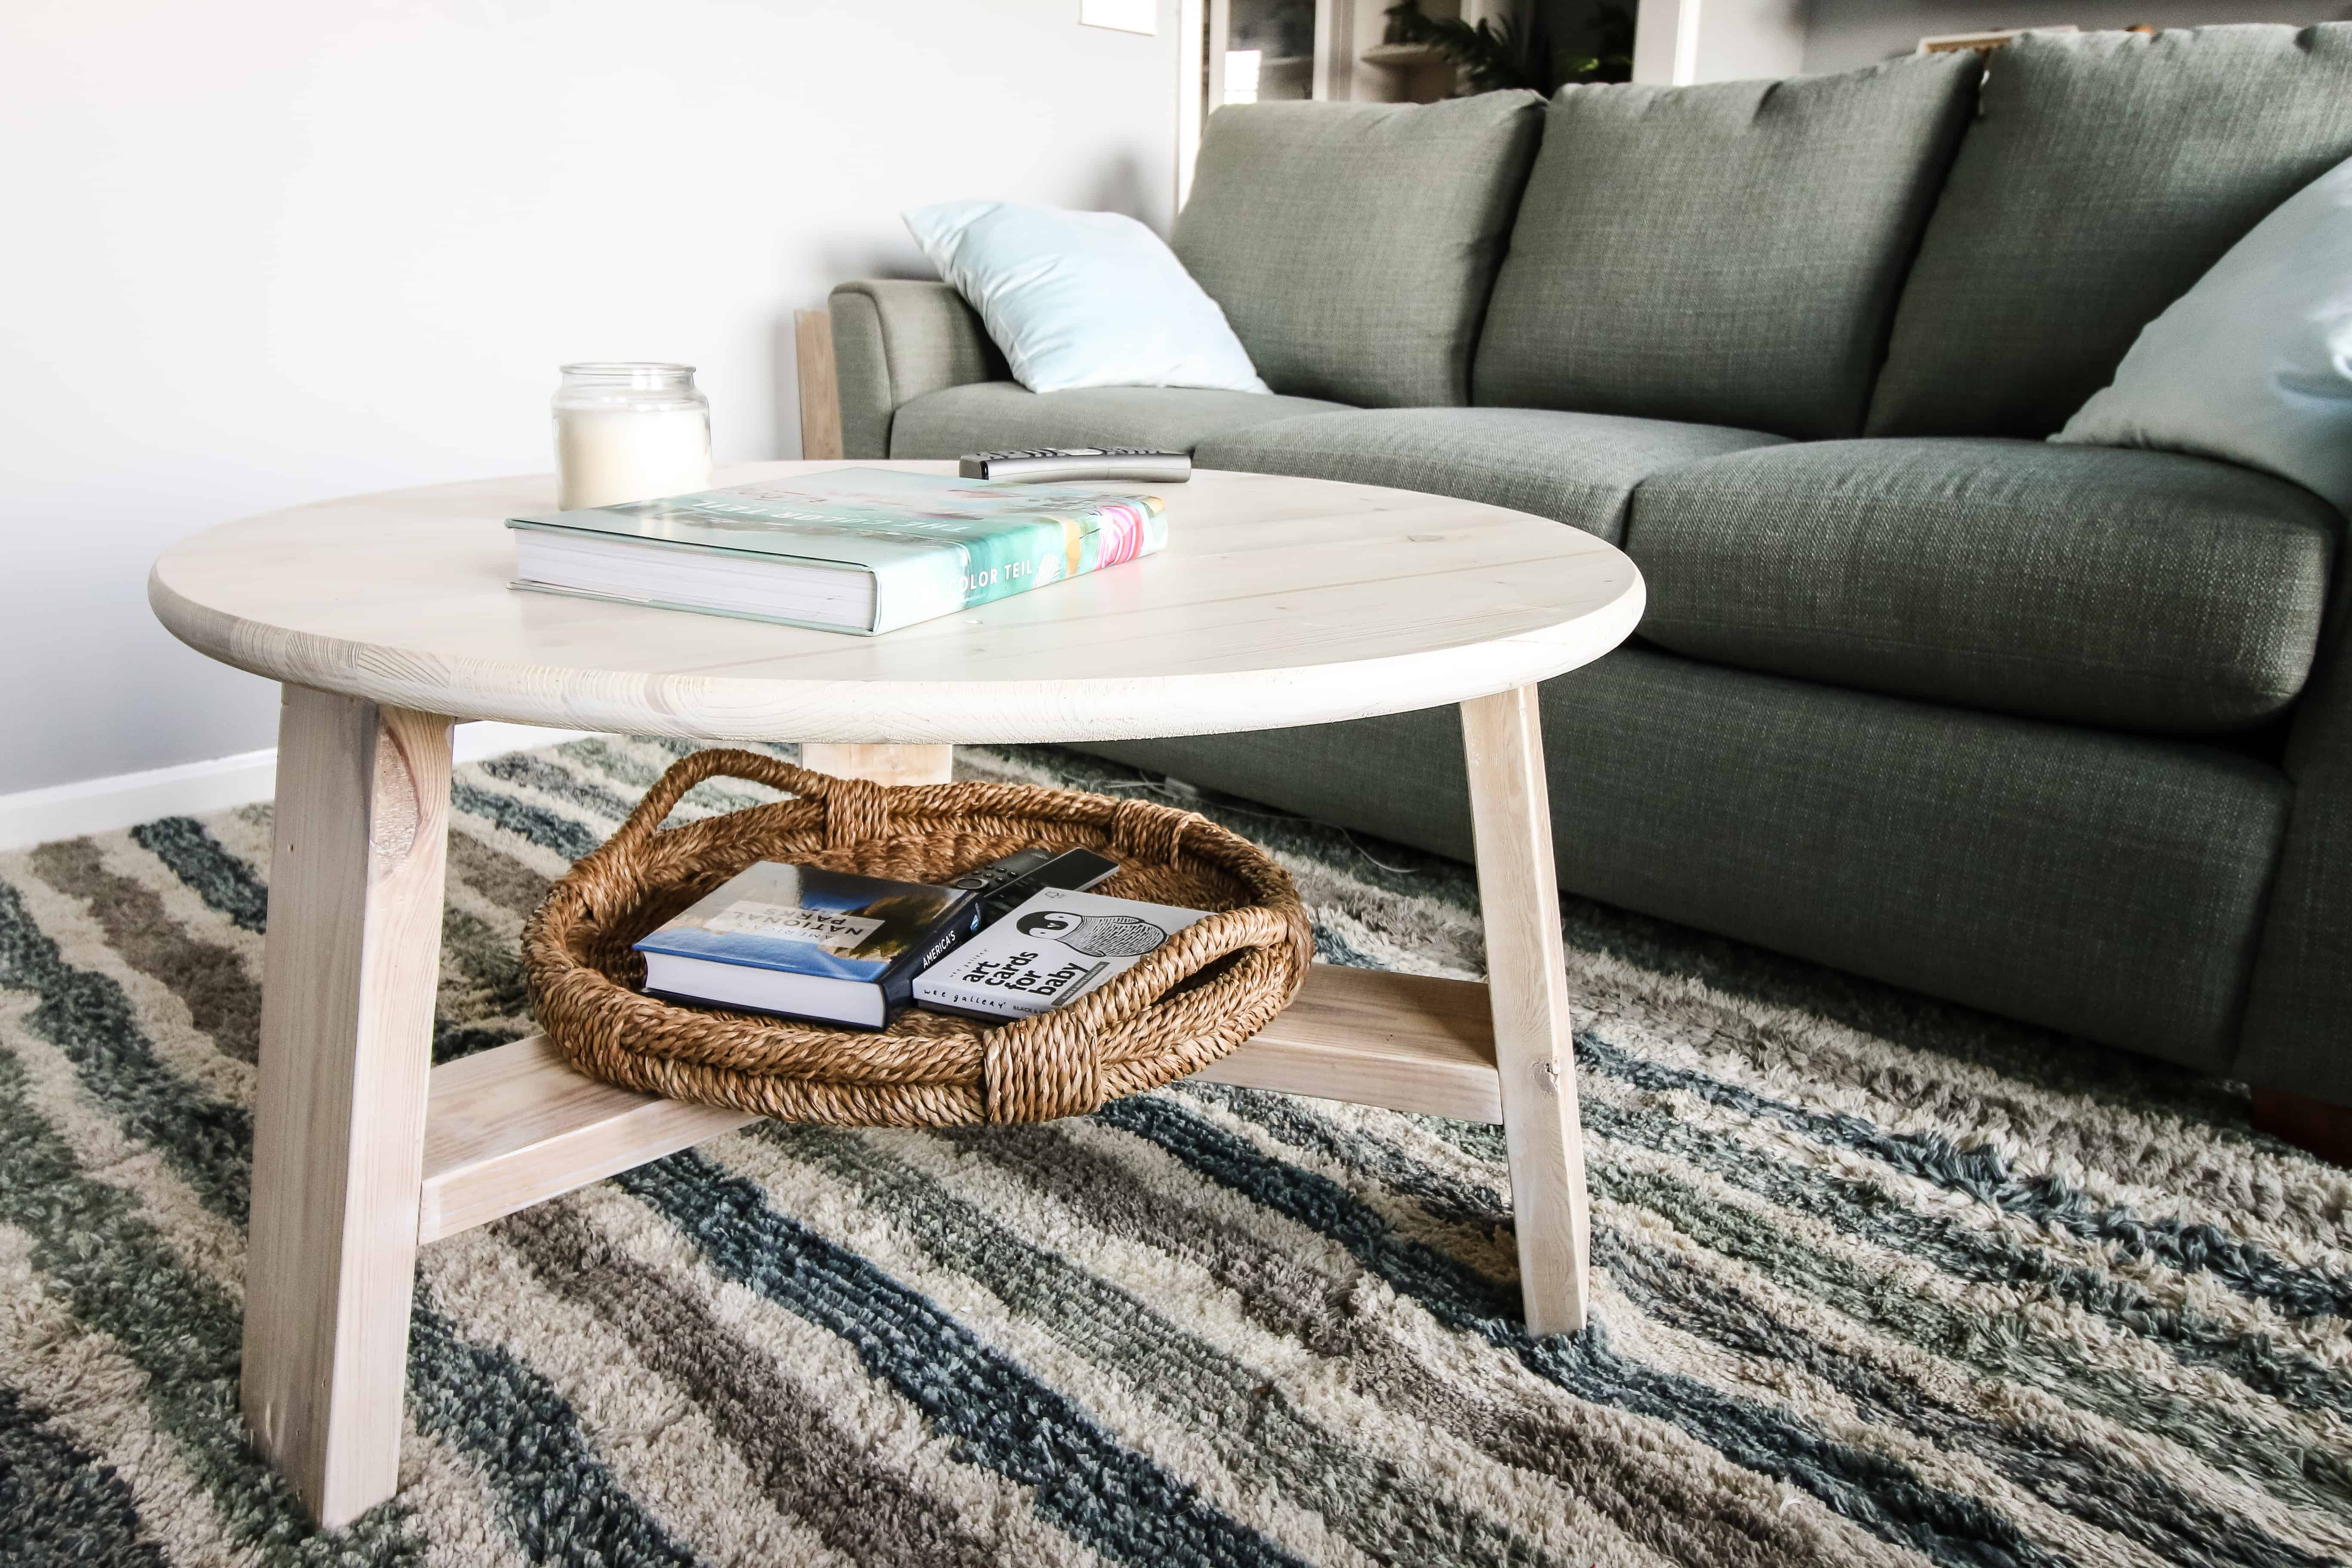 How To Build An Easy Modern Diy Coffee Table